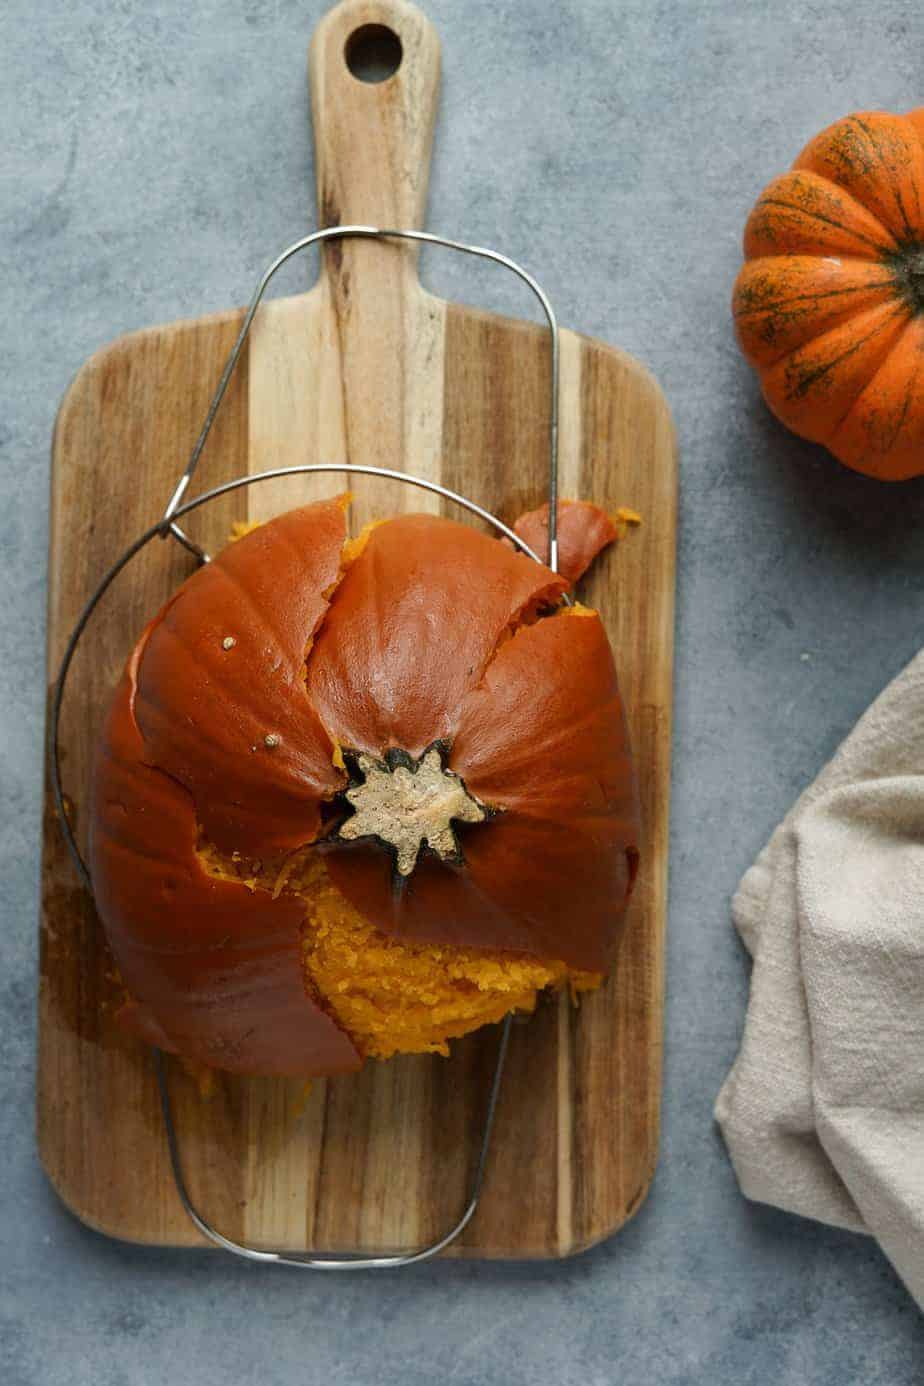 Move the cooked pumpkin to a cutting board with the help of the trivet.